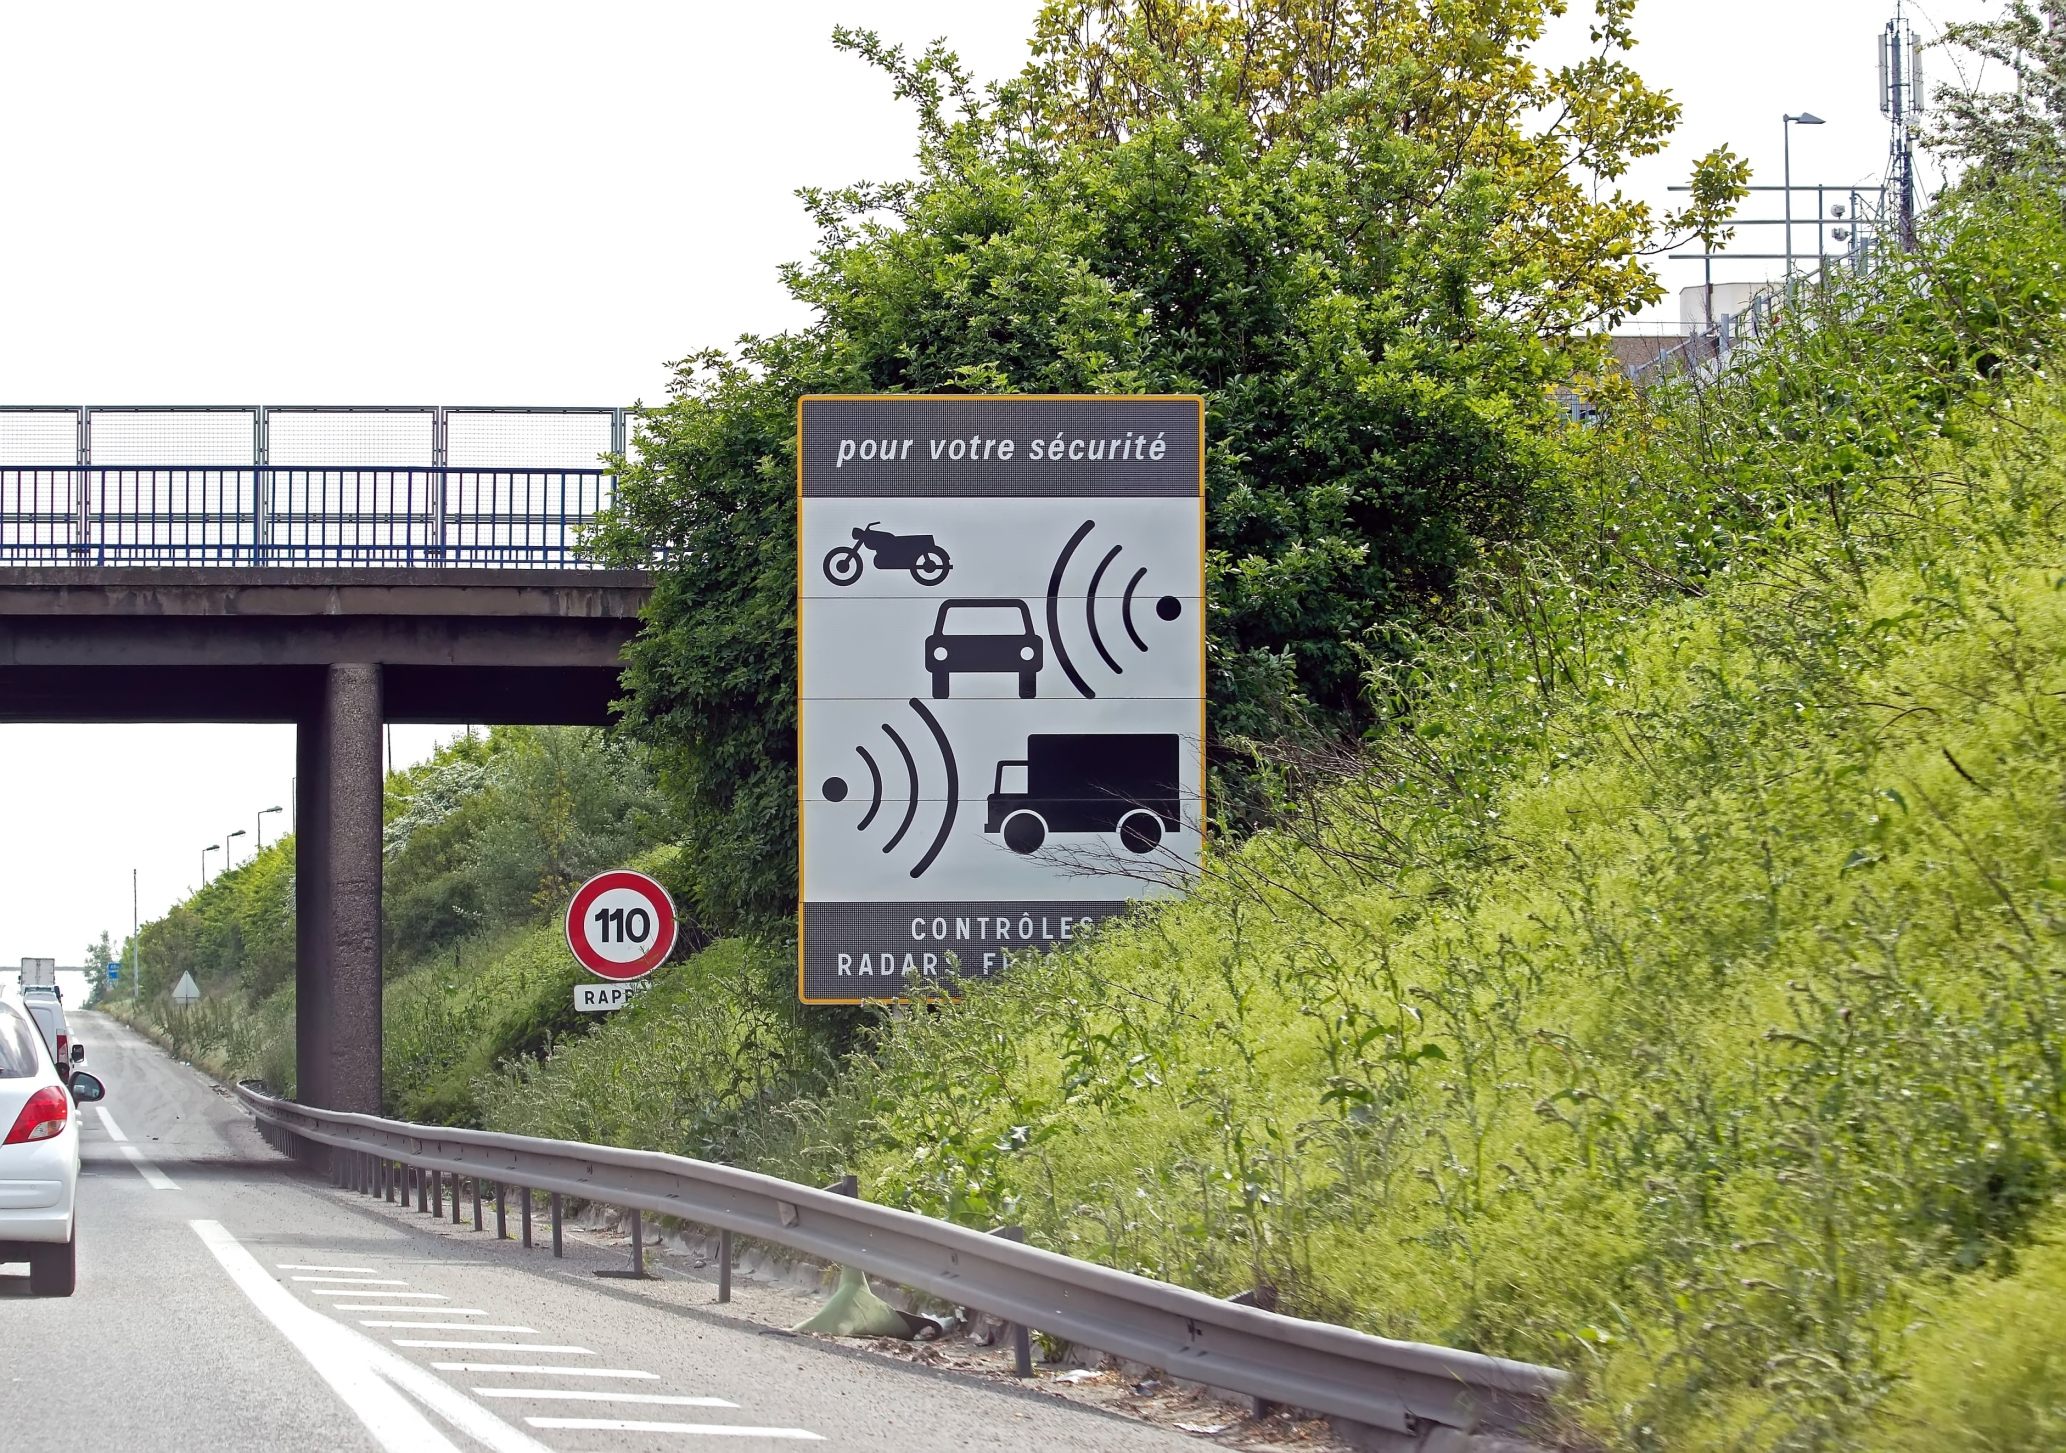 Radar panel on highway in France